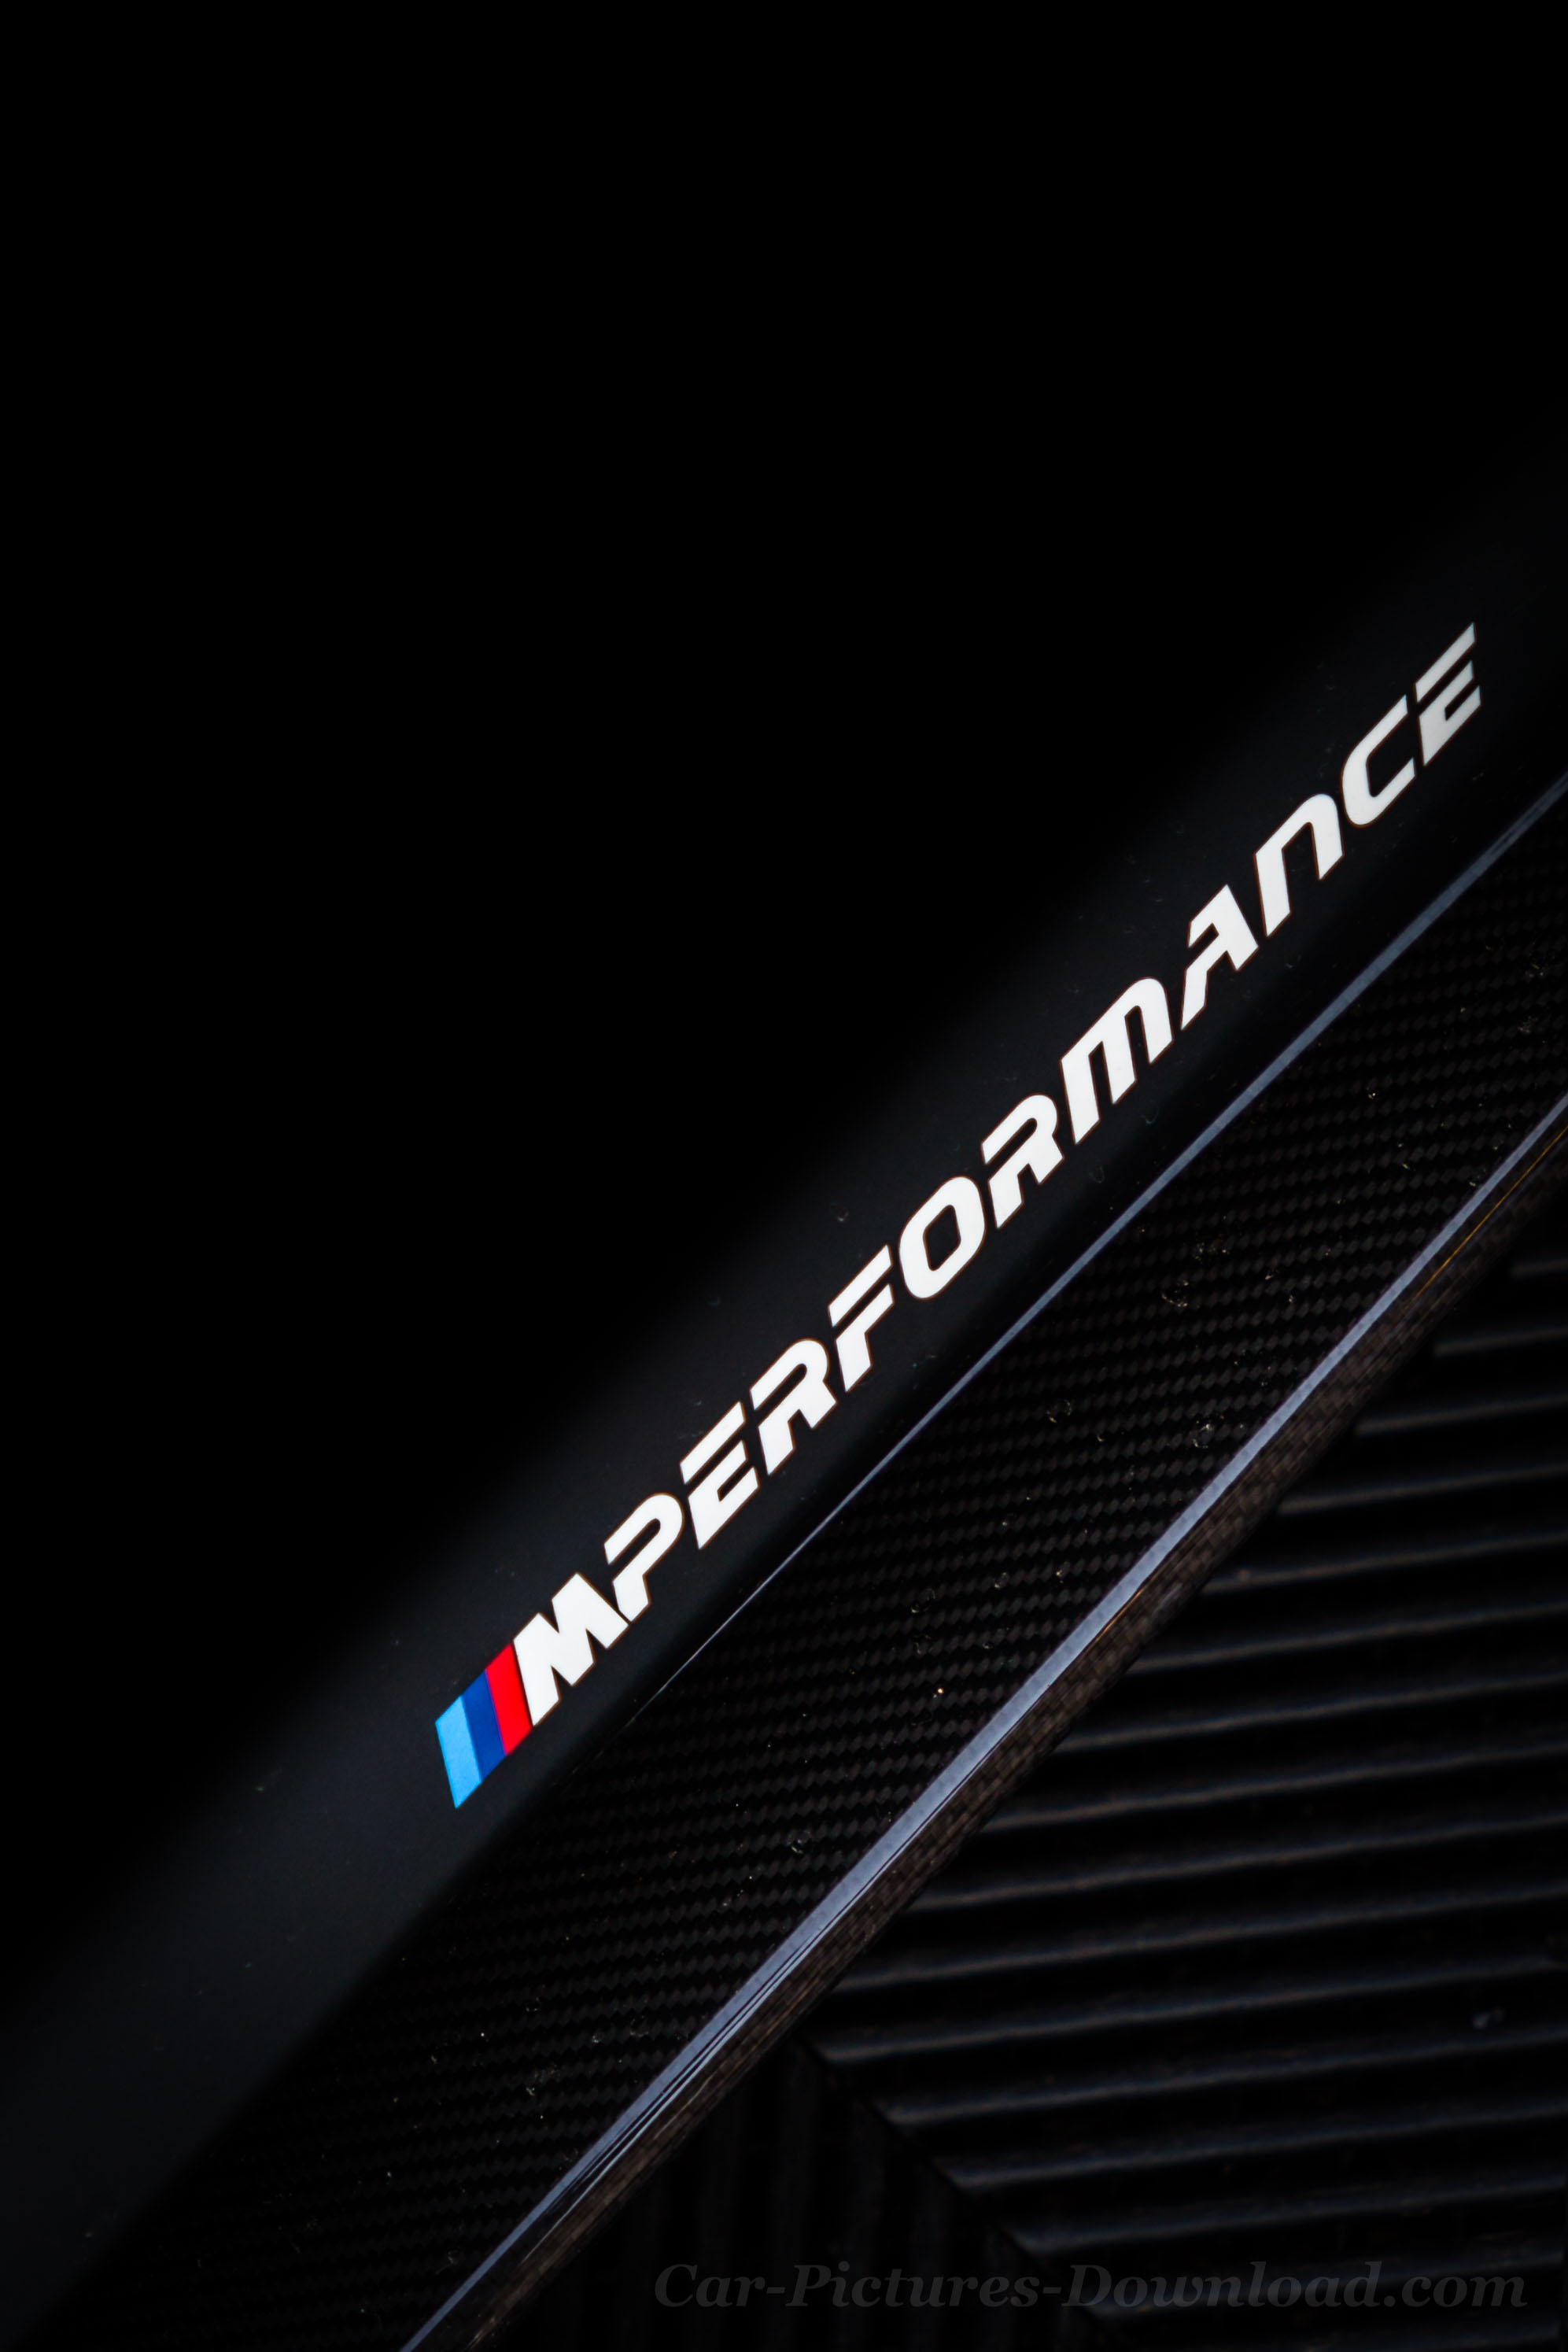 Bmw Motorsport Performance Wallpaper Car 1993x2989 Download Hd Wallpaper Wallpapertip